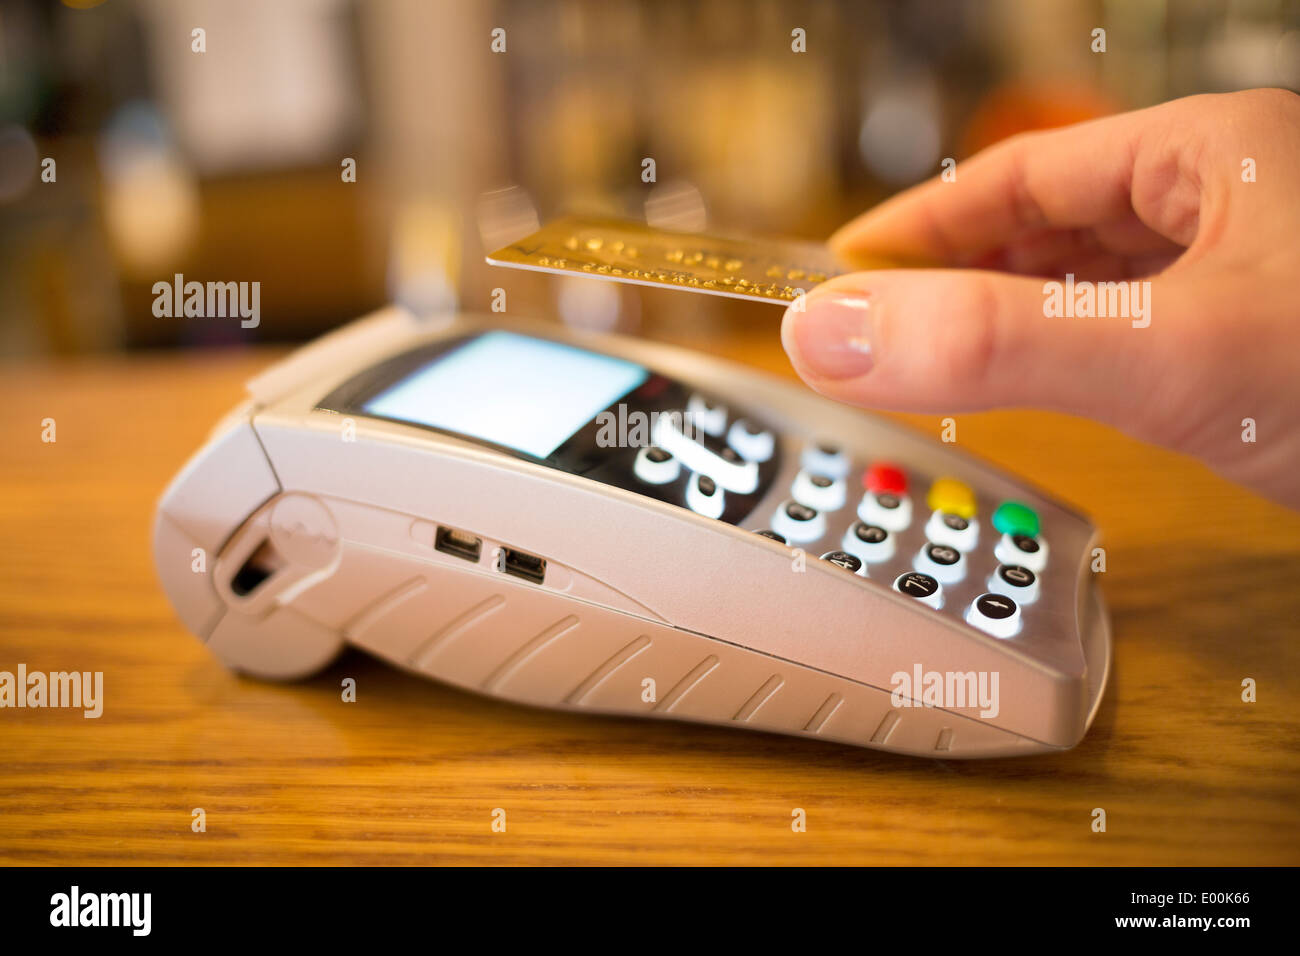 Female hand wallet payment shop - Stock Image